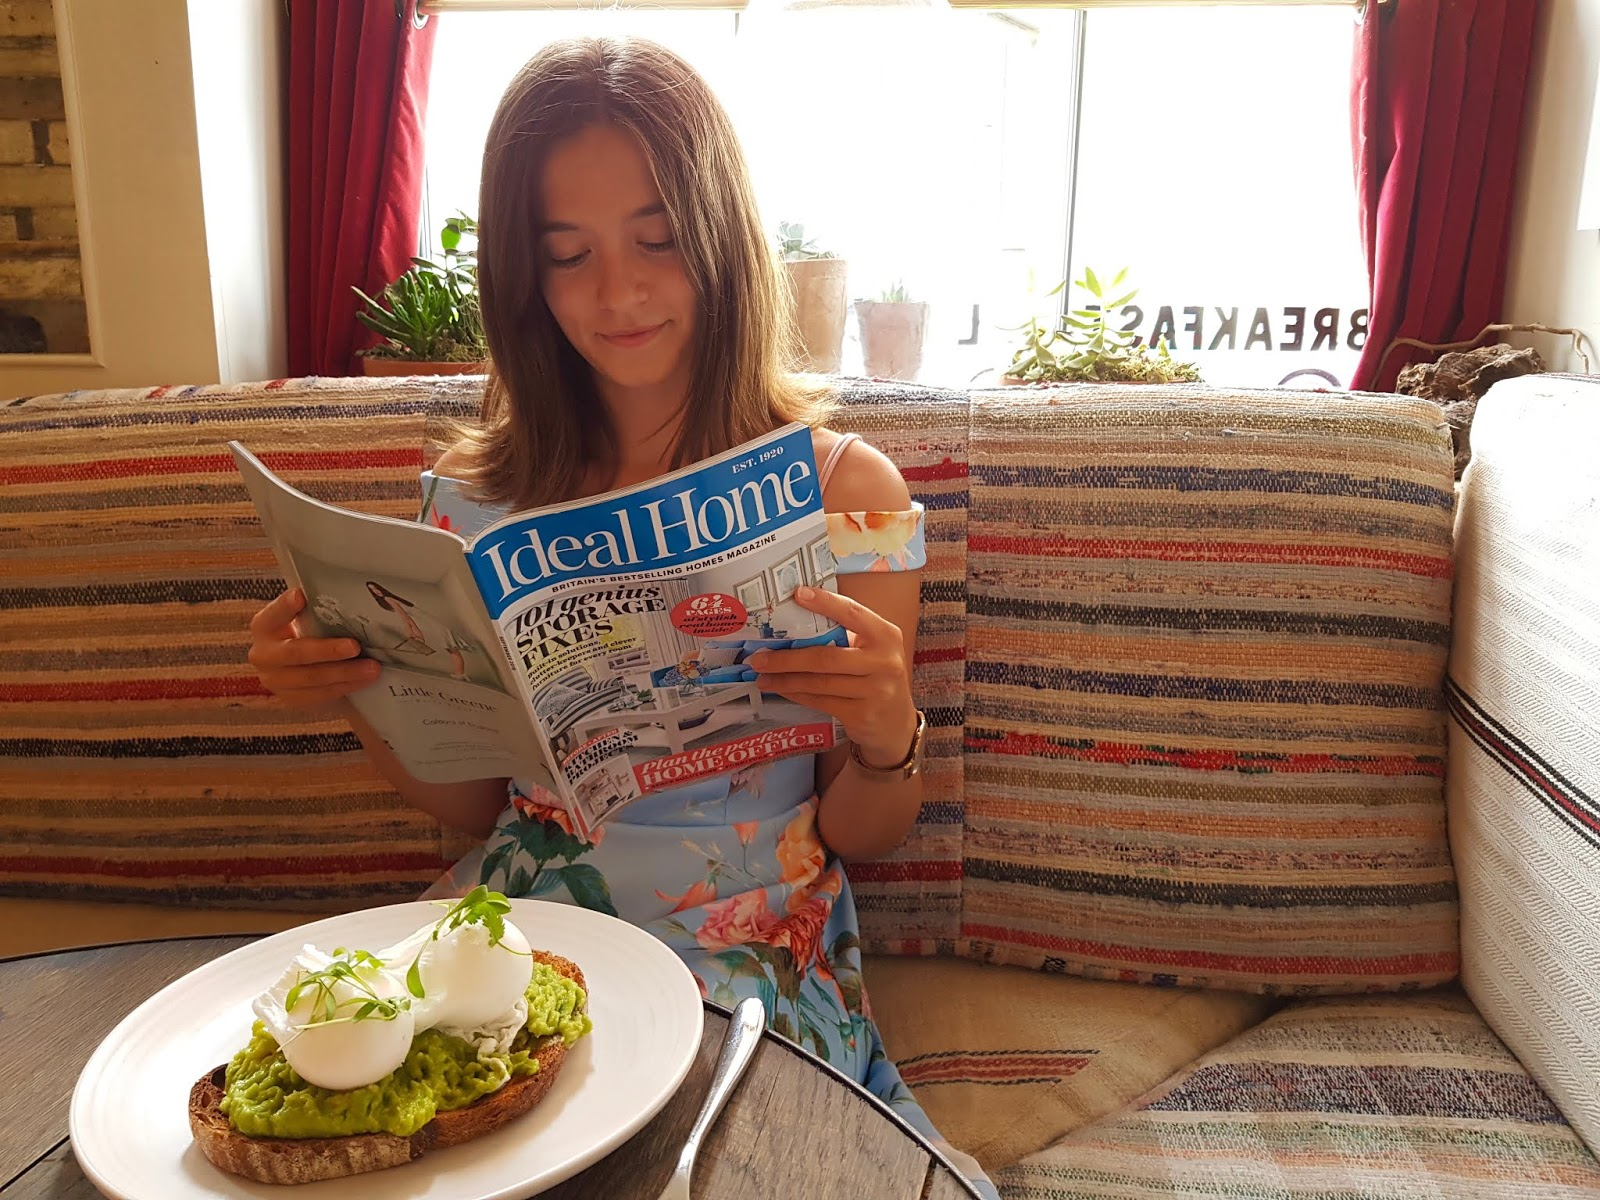 young woman reading property magazine with avocado on toast in front of her